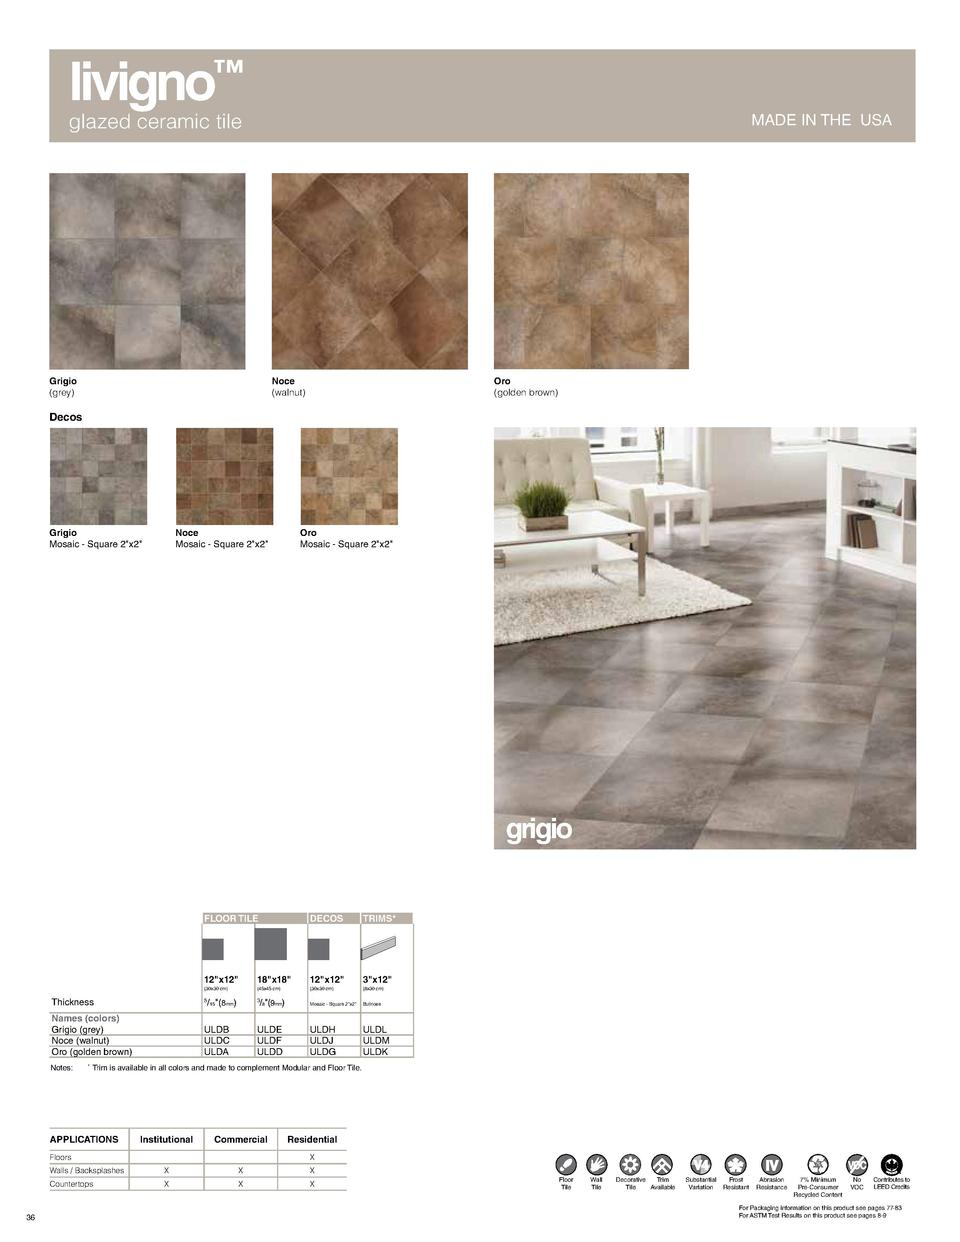 livigno    glazed ceramic tile  MADE IN THE USA  Grigio  grey   Noce  walnut   Oro  golden brown   Decos  Grigio Mosaic - ...